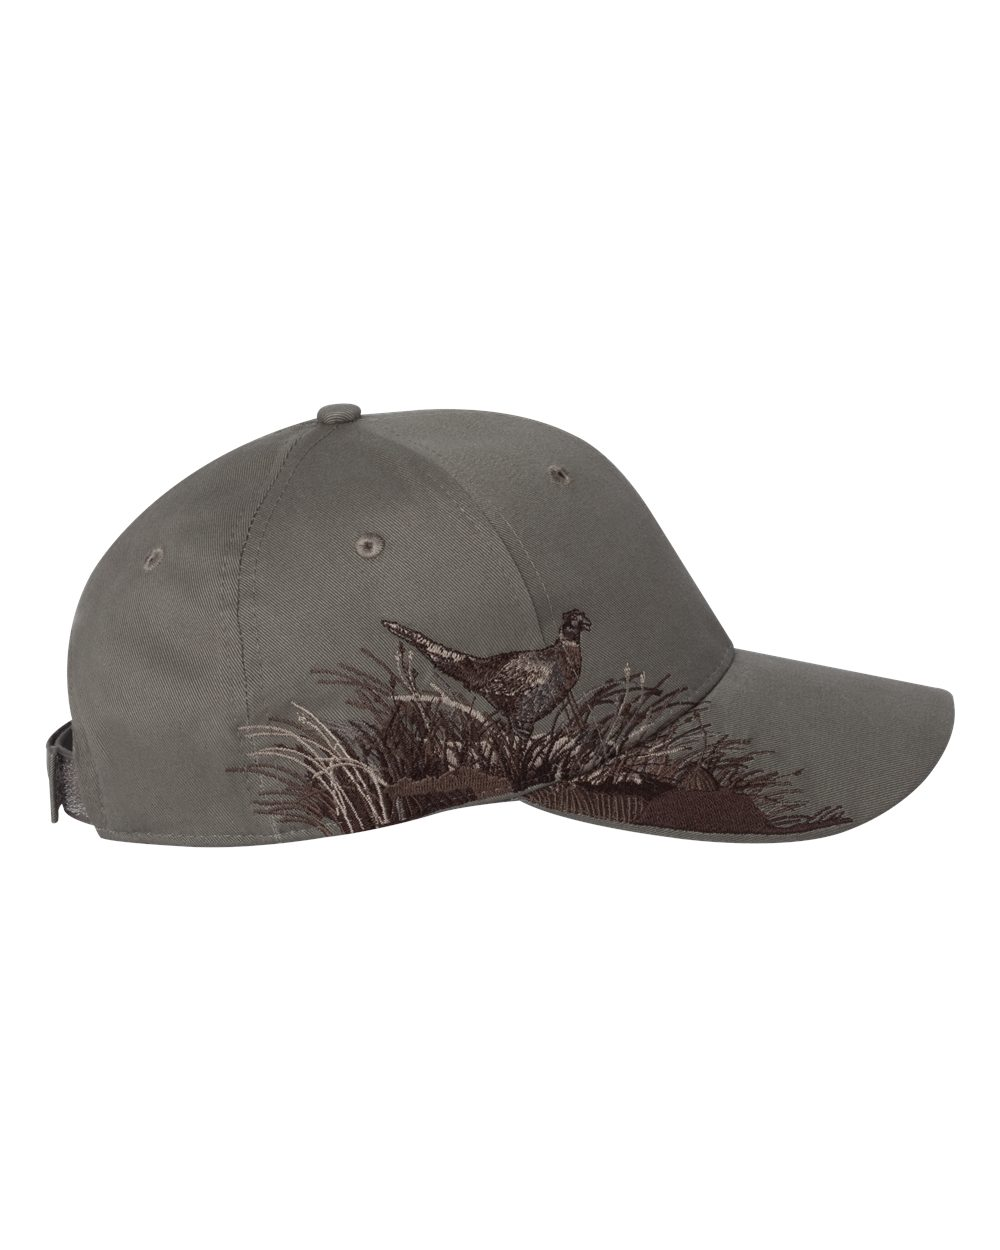 DRI DUCK 3261 - Wildlife Series Pheasant Cap